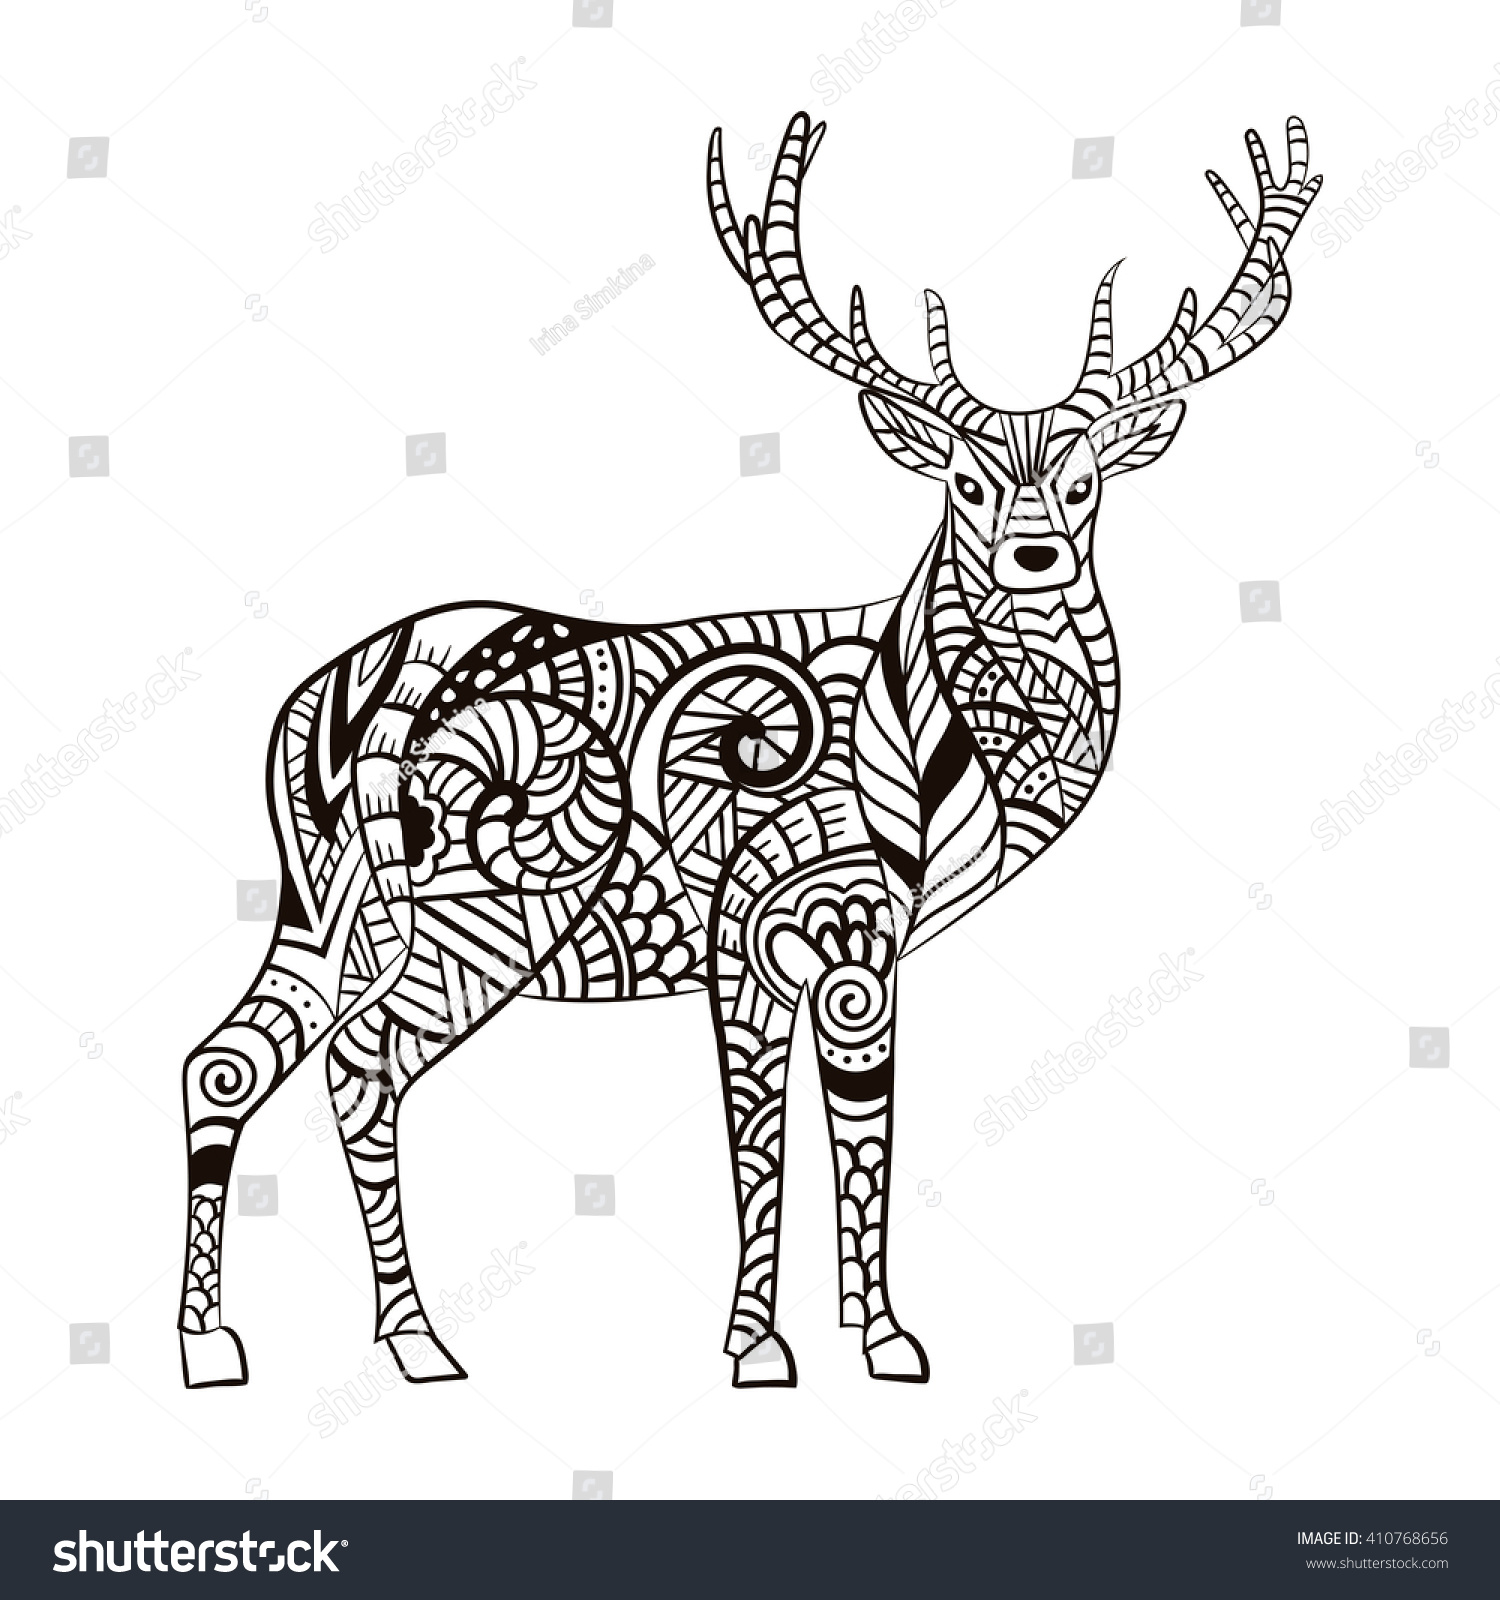 deer hand drawn deer anti stock vector 410768656 shutterstock